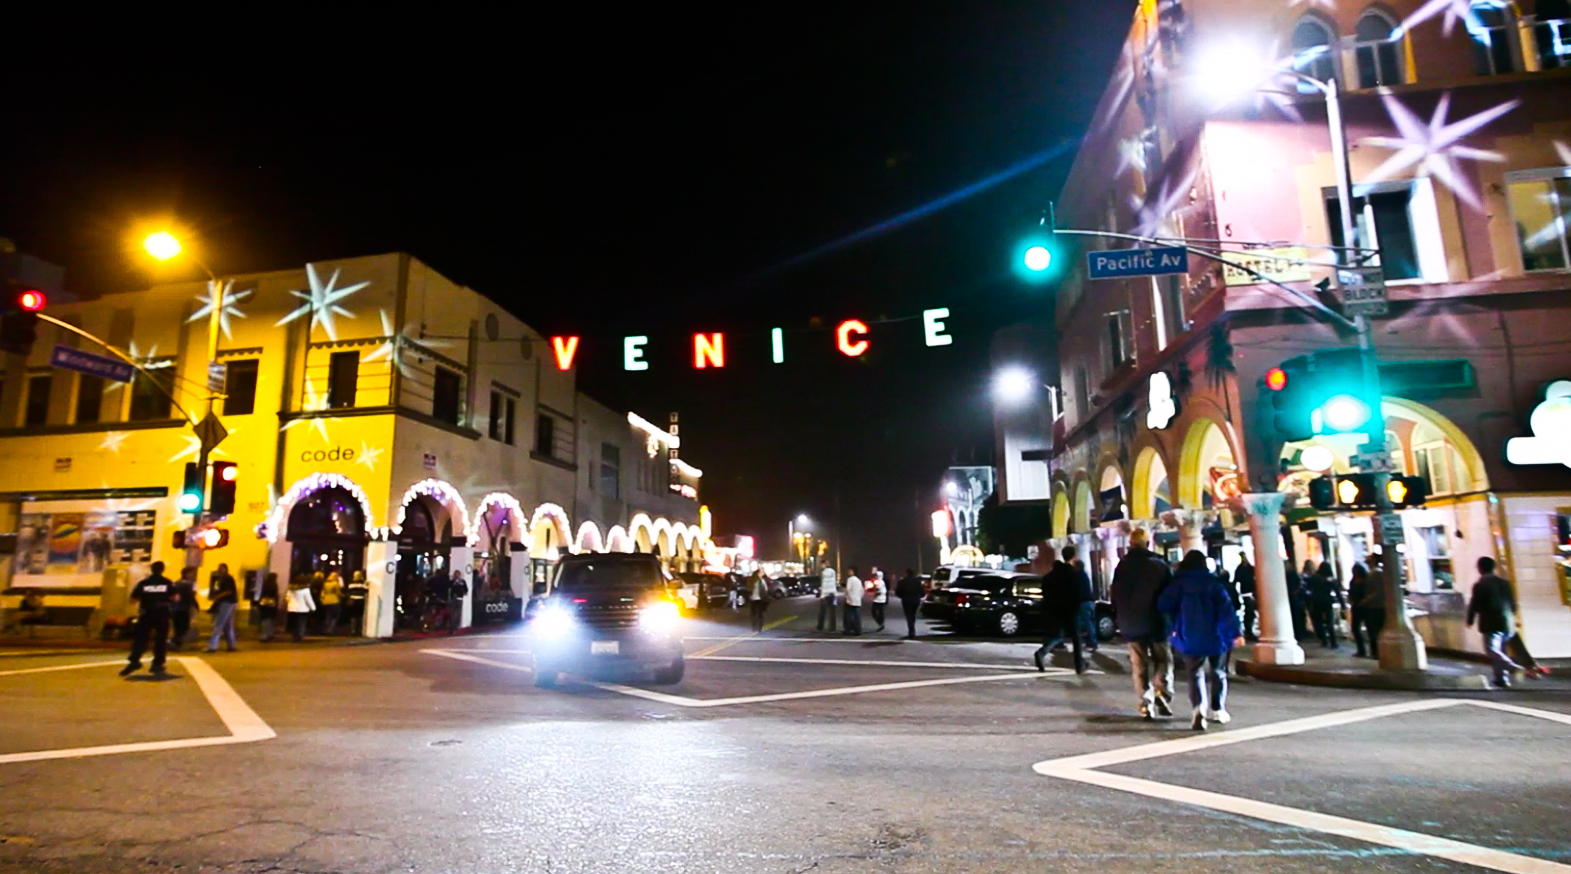 ch 35 announces broadcast dates for venice sign holiday lighting festivities